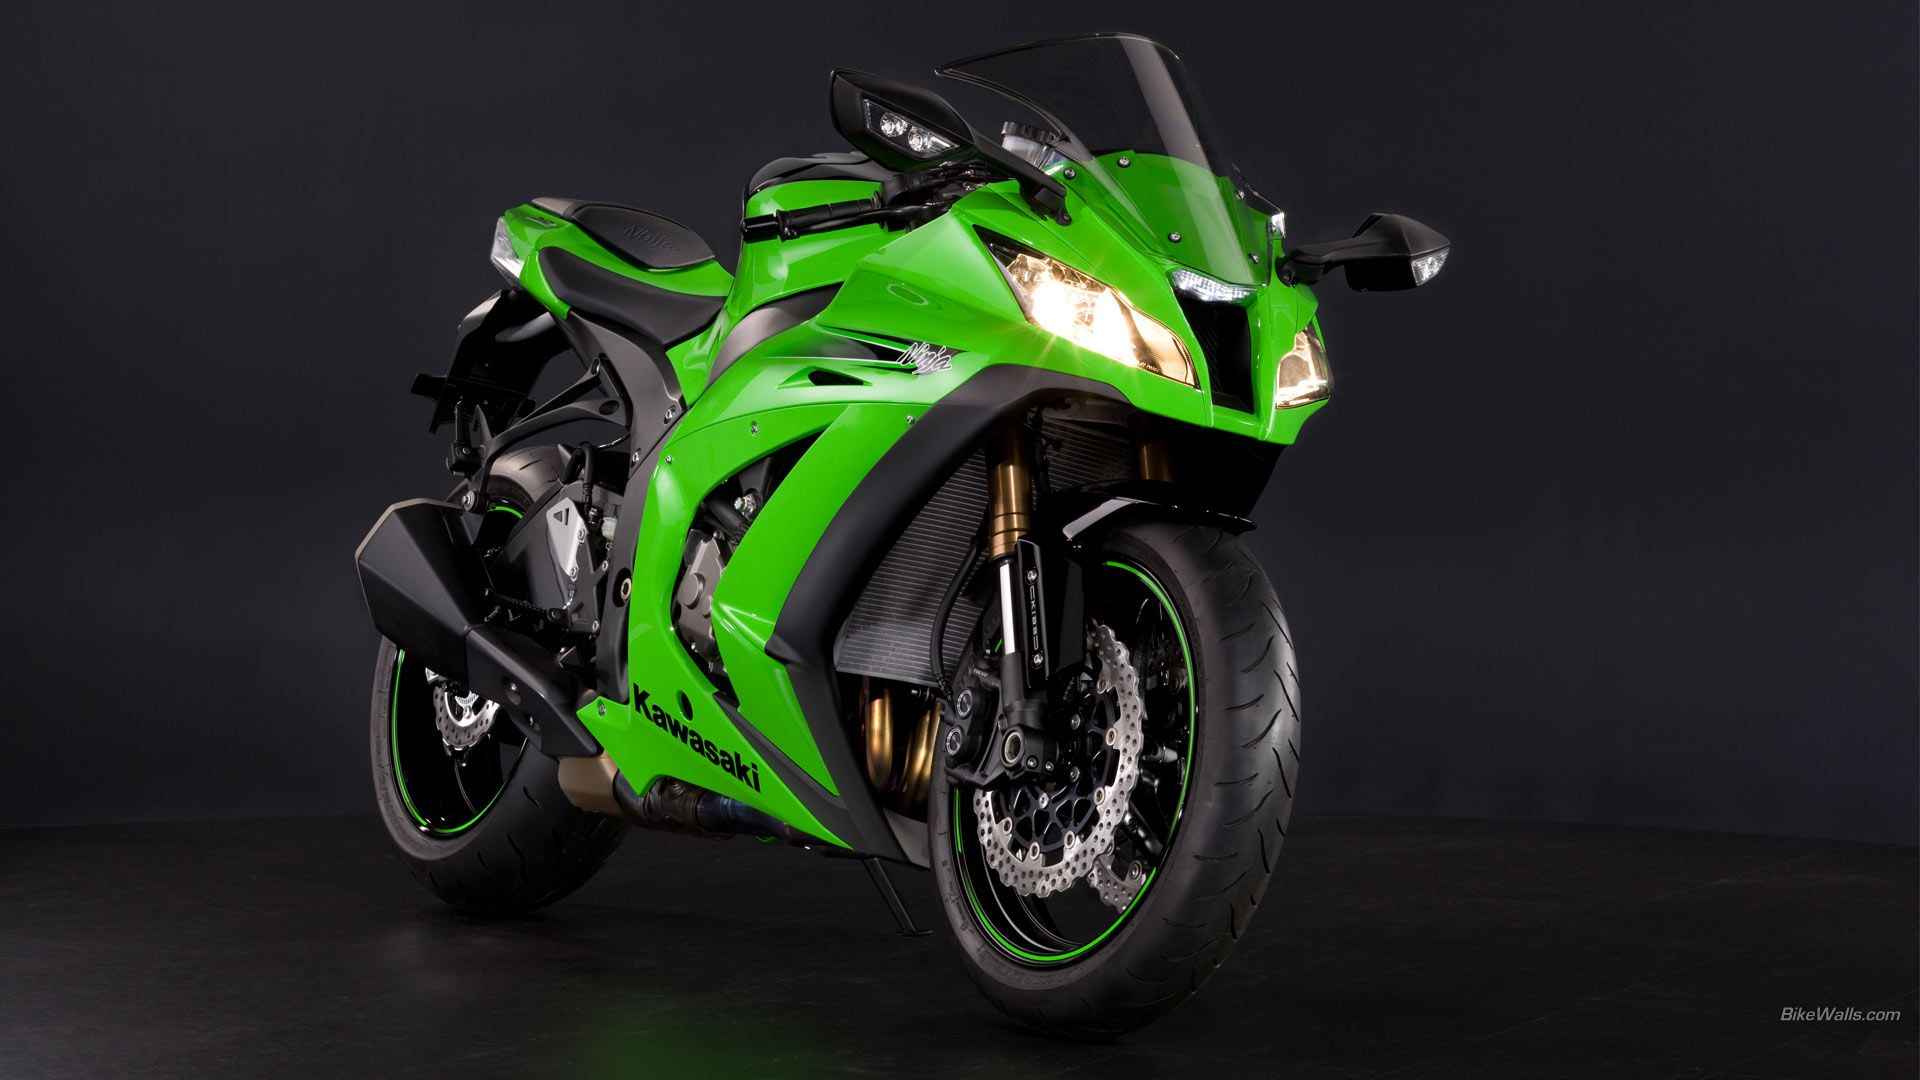 Kawasaki Ninja Wallpaper Hd But You Can Always Find Out More About The 2015 Honda Civic